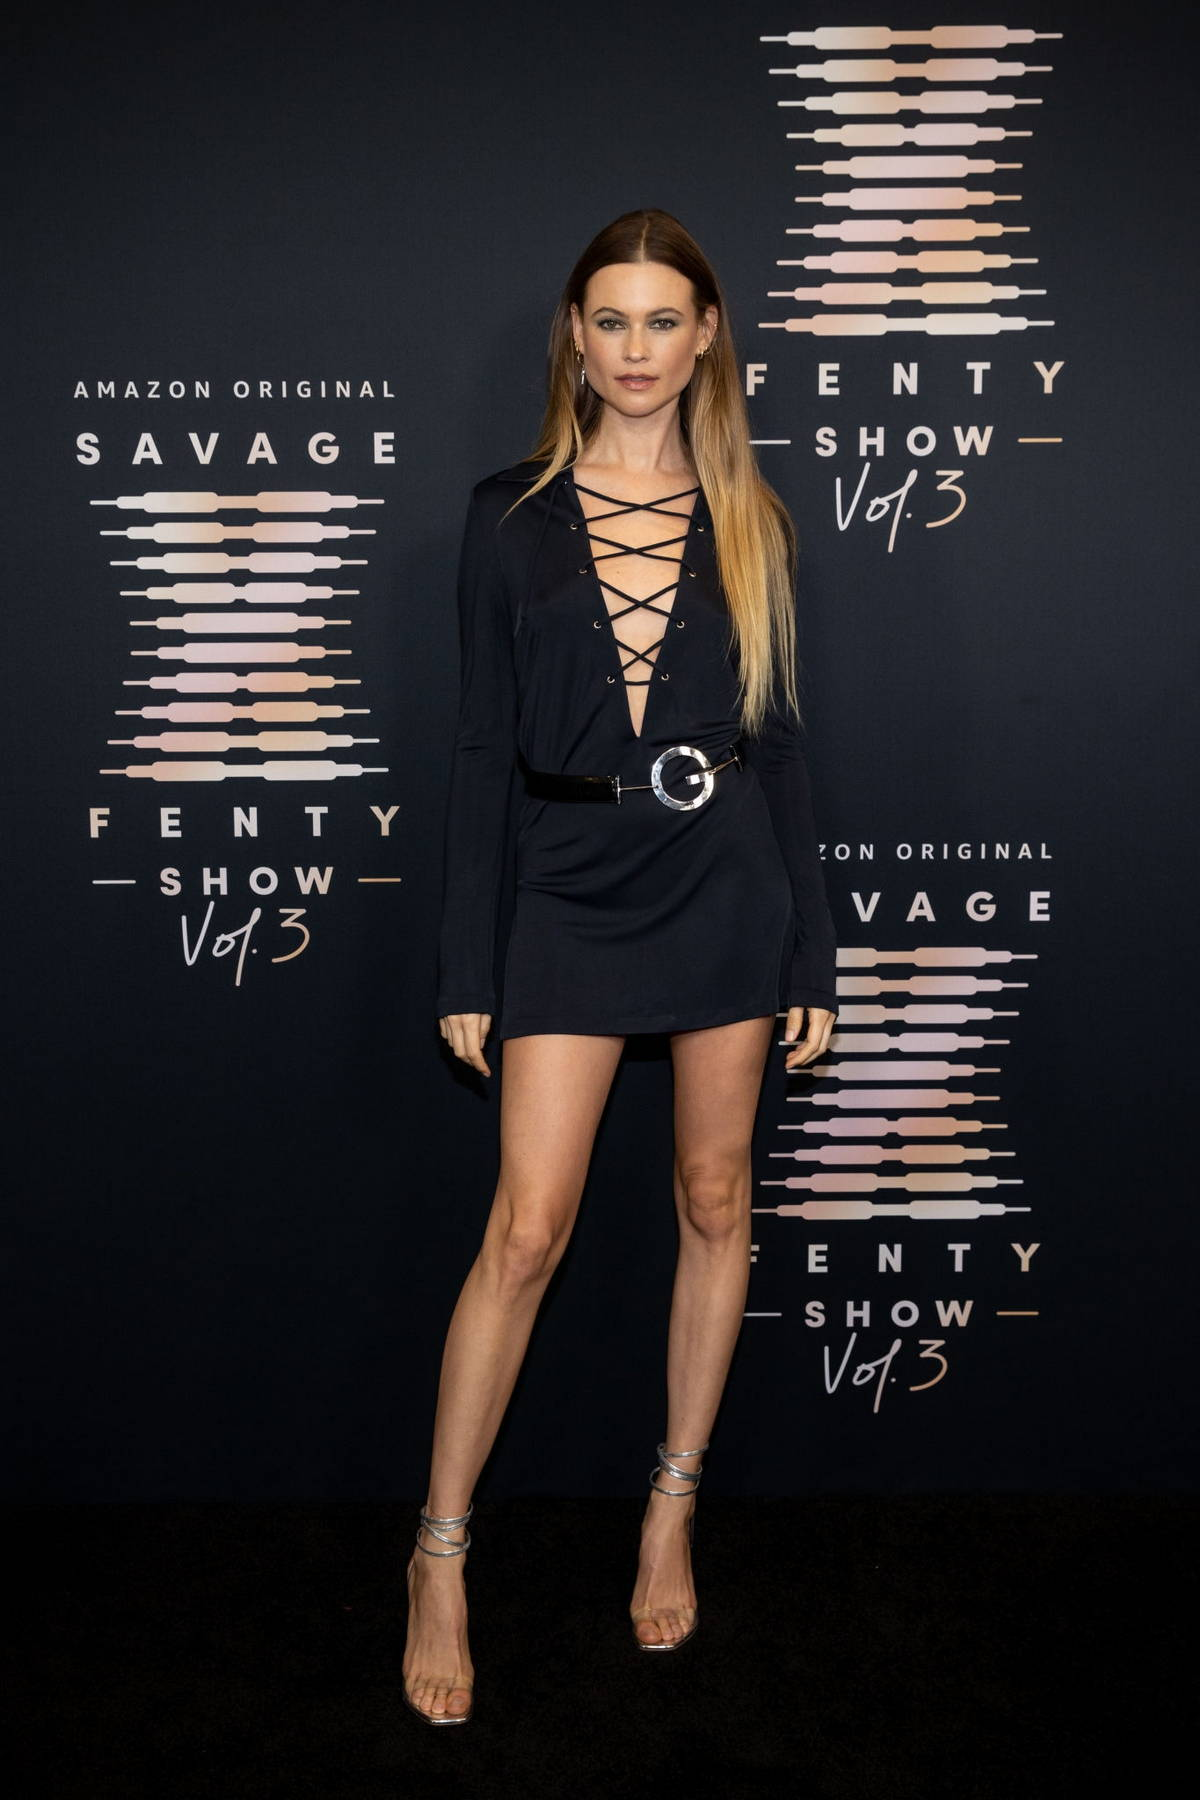 Behati Prinsloo attends the Savage x Fenty Show Vol 3 in Los Angeles